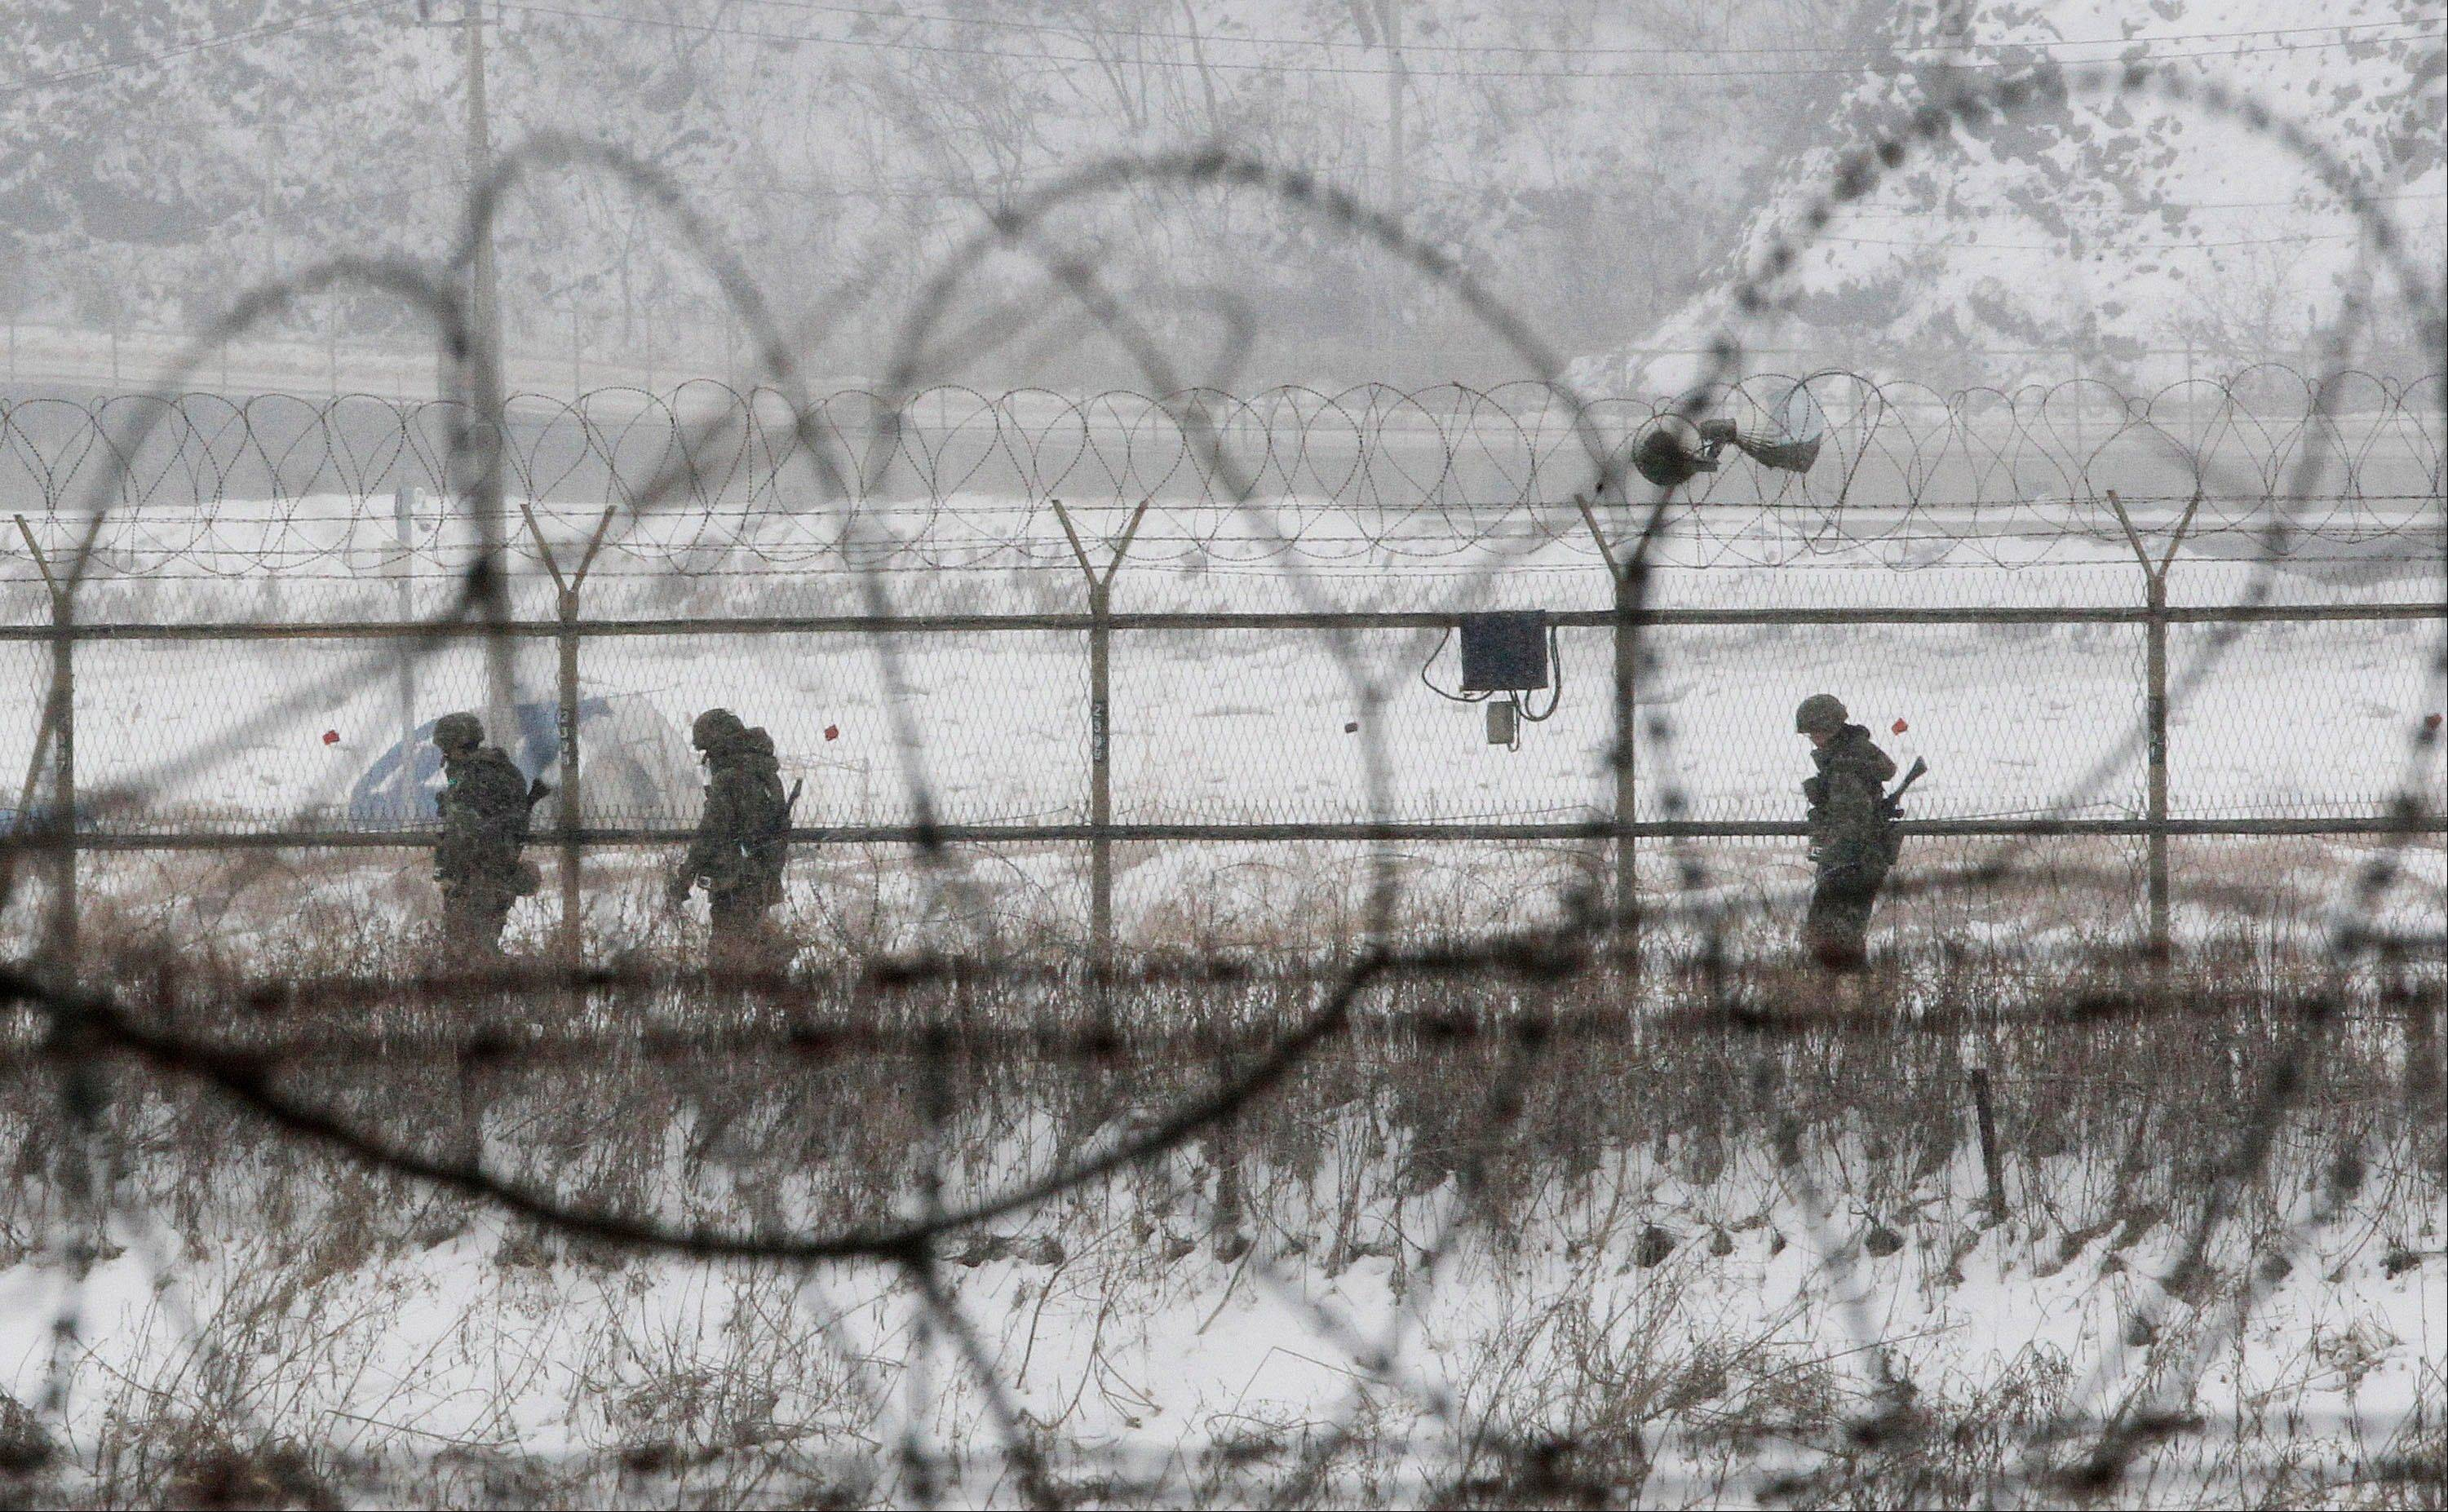 South Korean army soldiers patrol along barbed-wire fences at the Imjingak Pavilion, near the demilitarized zone of Panmunjom, in Paju, South Korea, Tuesday. North Korea tested a nuclear device in defiance of U.N. orders to stop building atomic weapons earlier in the day.